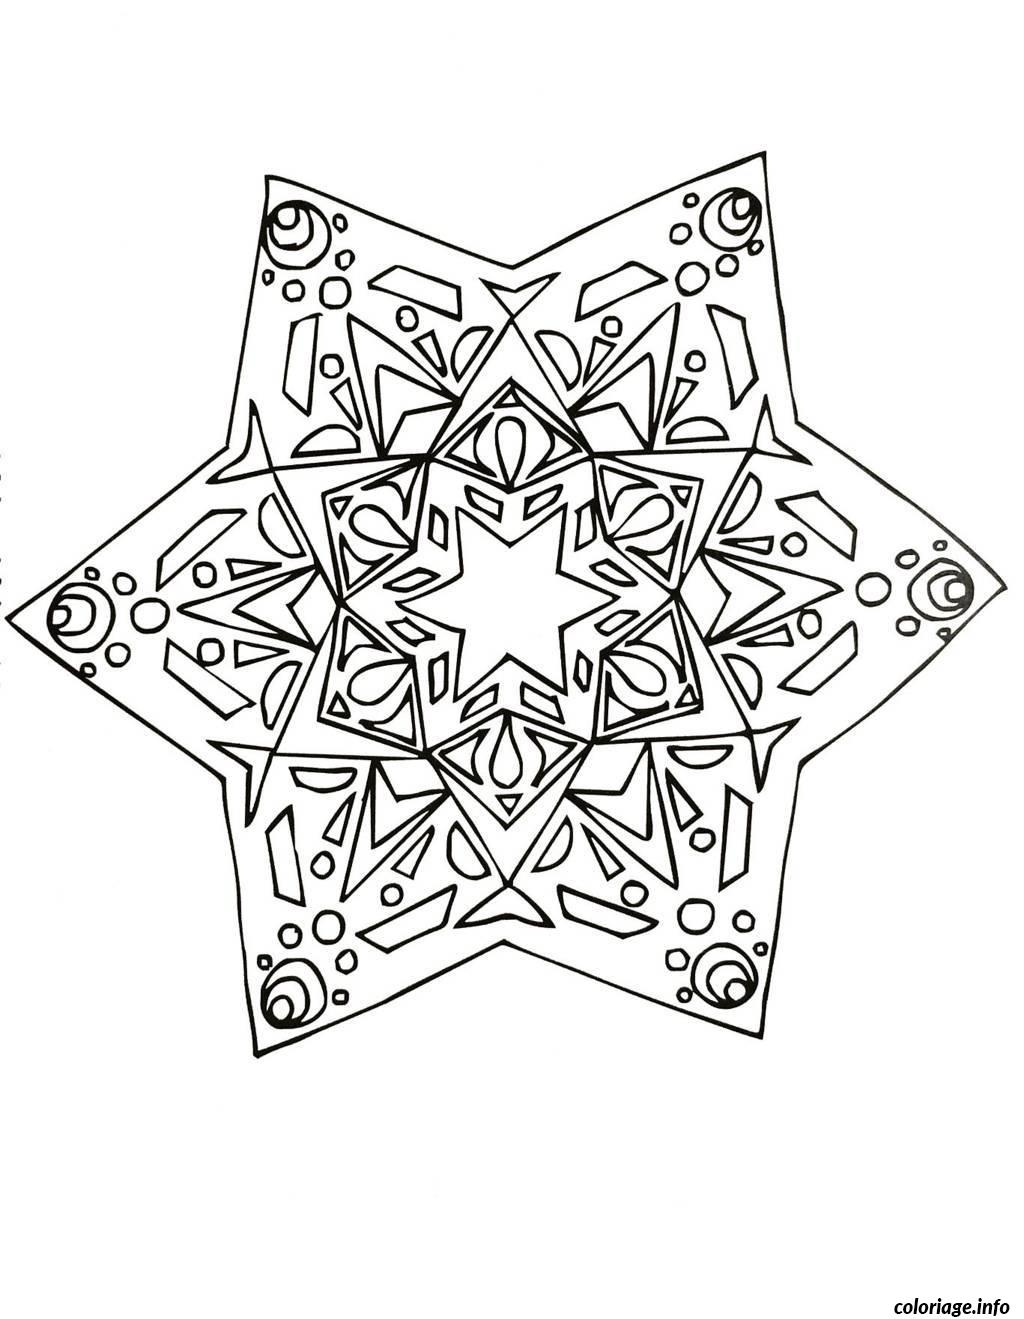 Dessin mandalas to download for free 22  Coloriage Gratuit à Imprimer